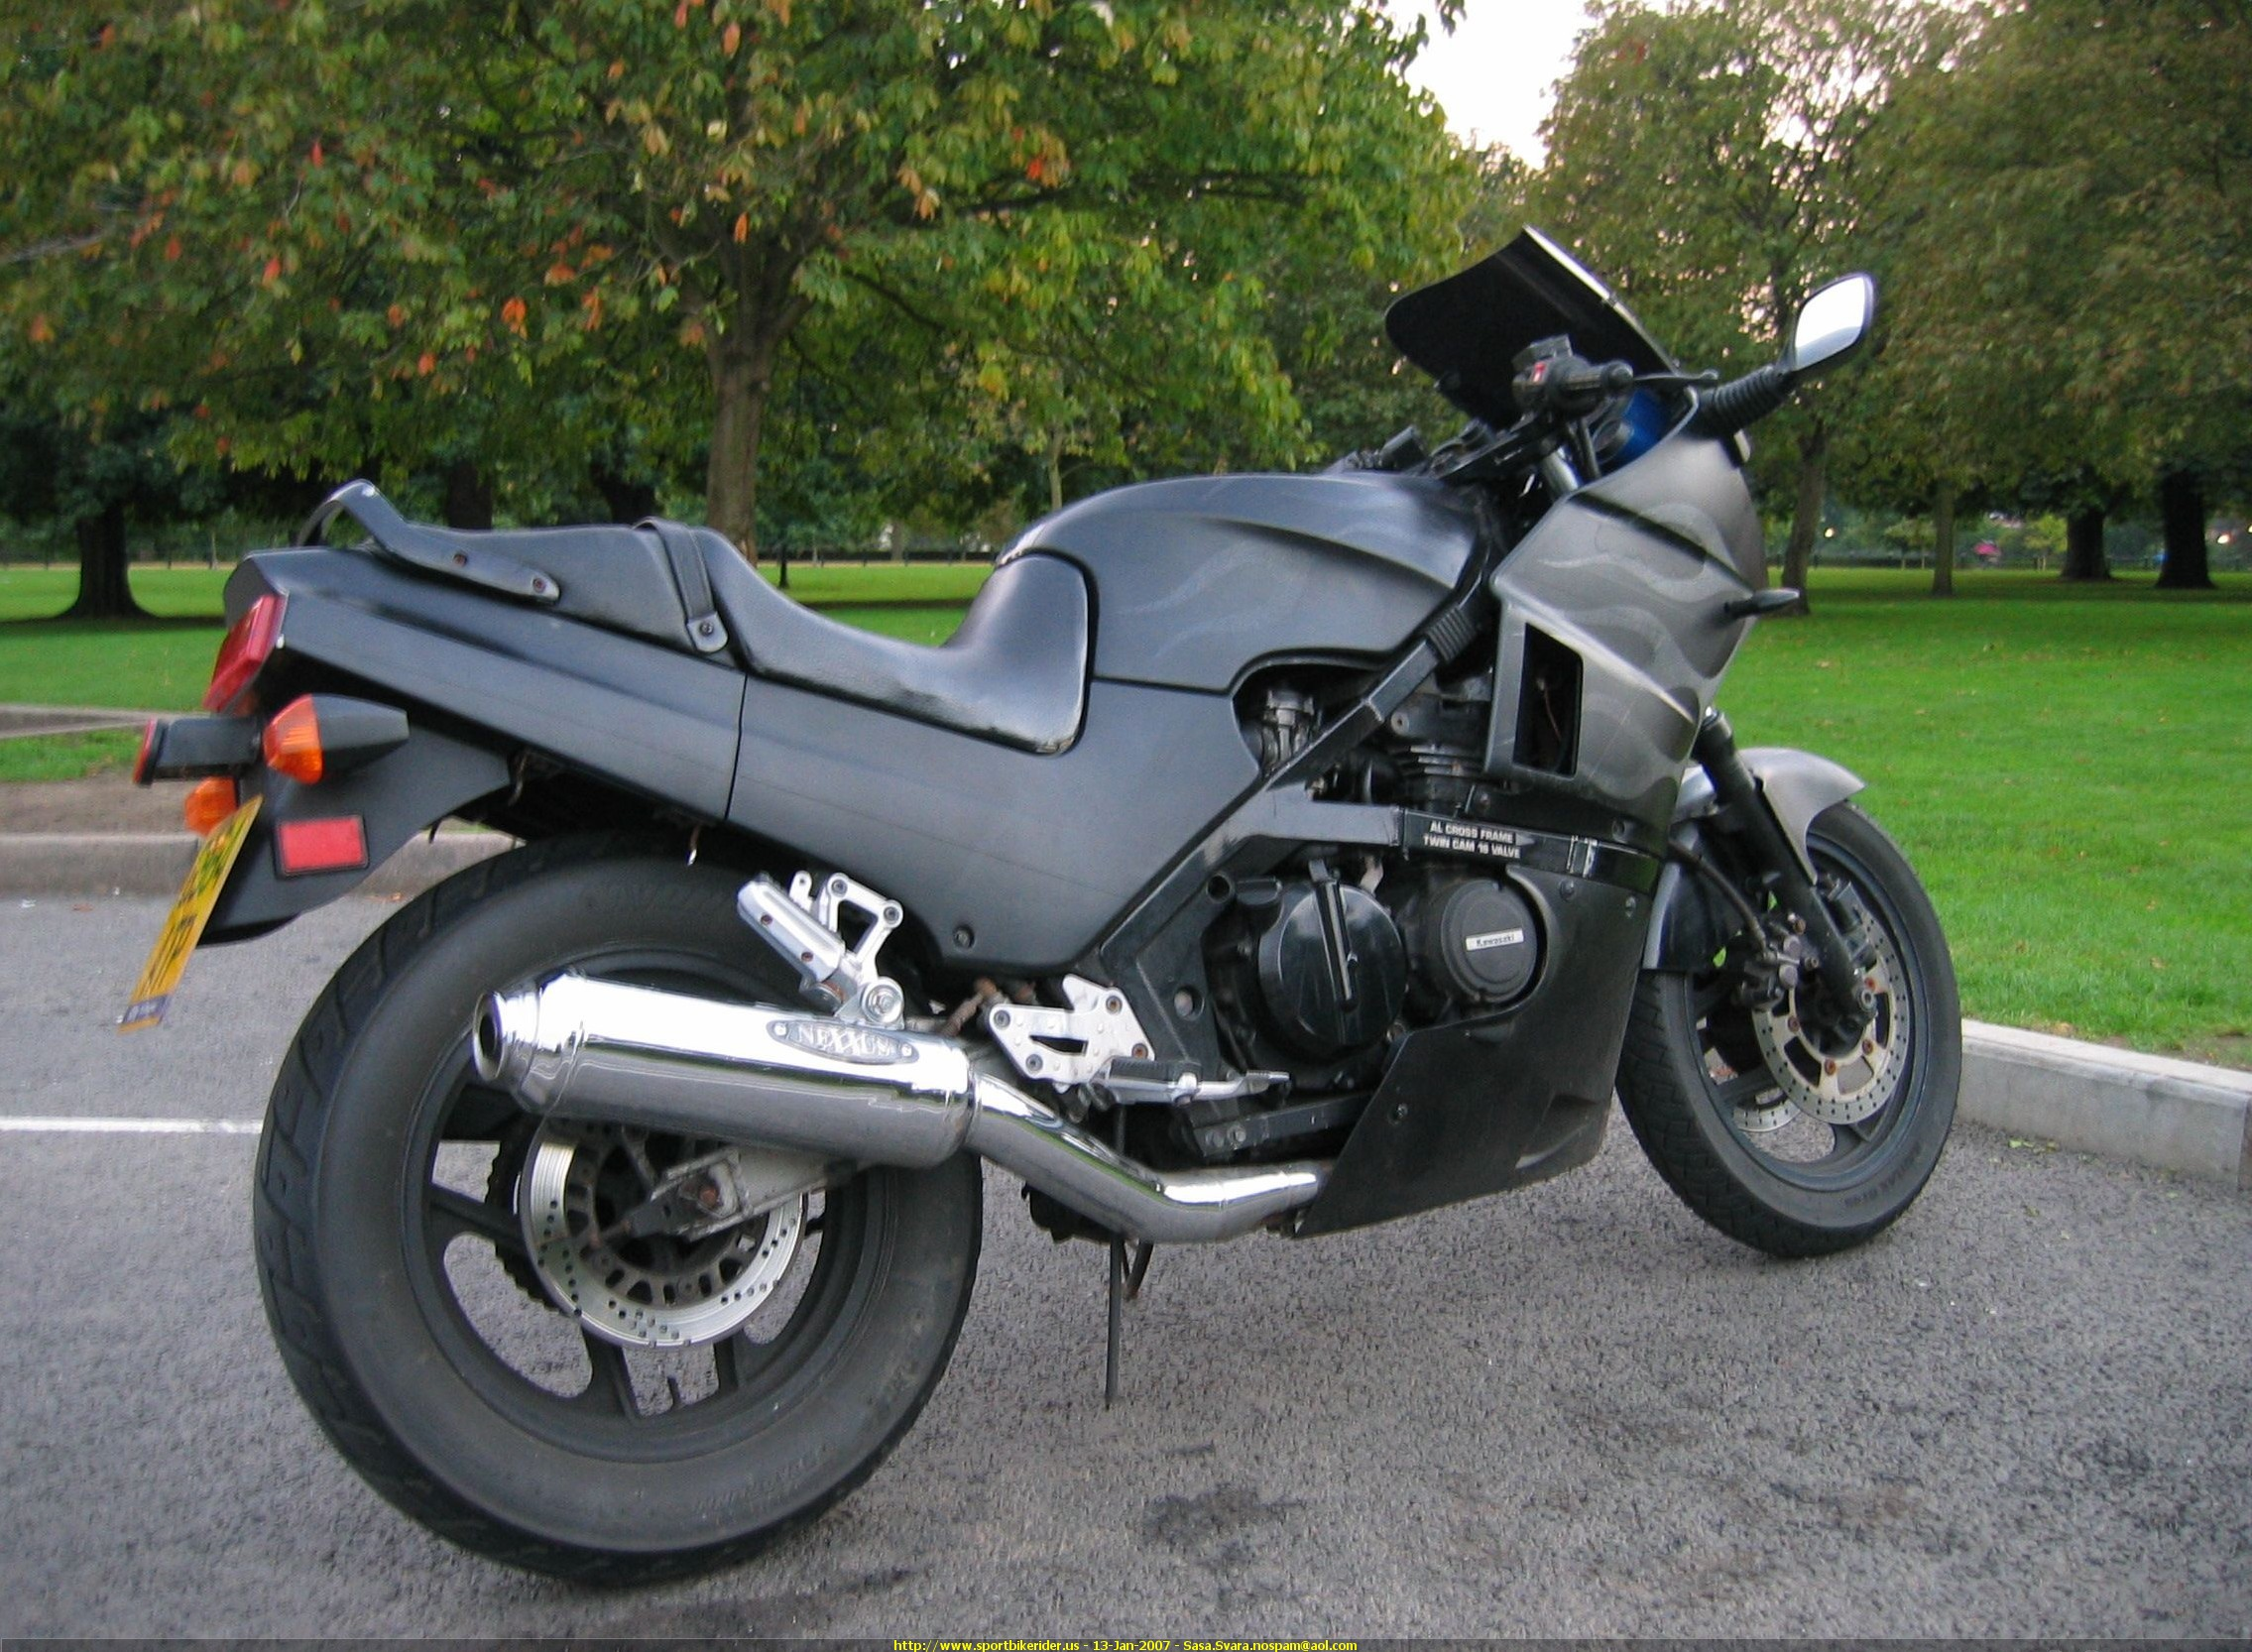 Review of Kawasaki GPZ 400 R 1986: pictures, live photos